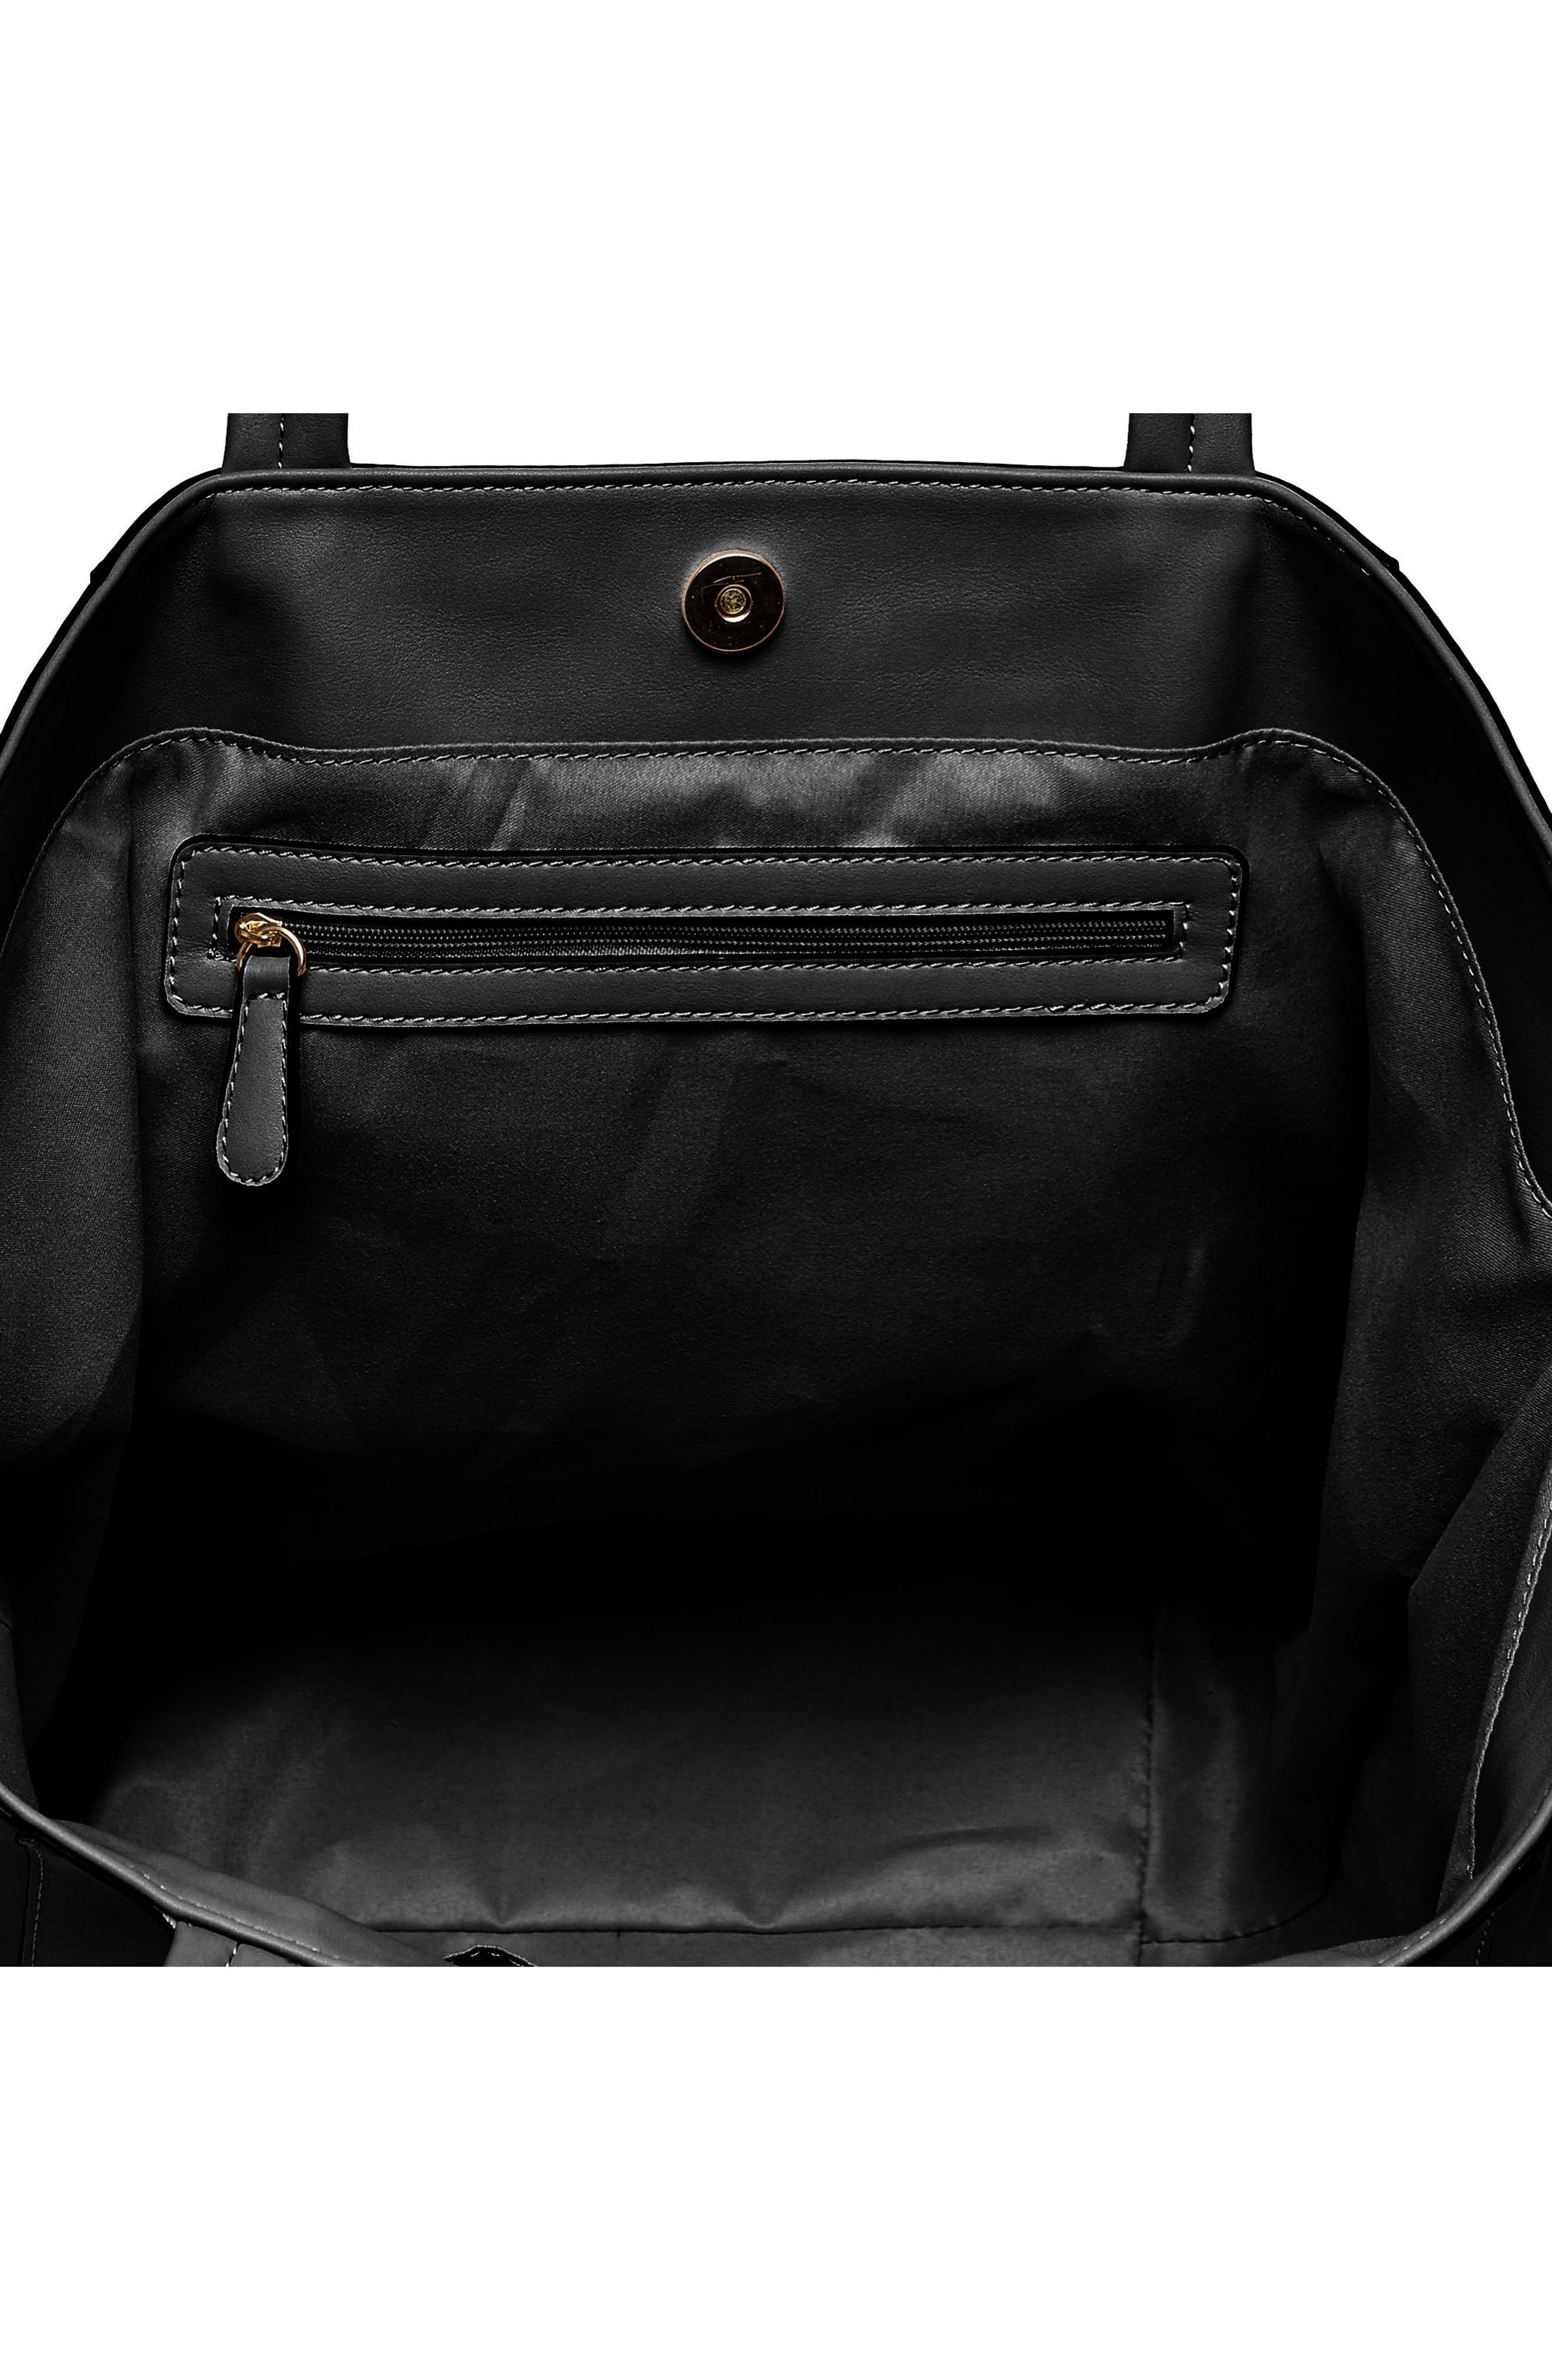 Every Girl Vegan Leather Tote,                             Alternate thumbnail 2, color,                             001